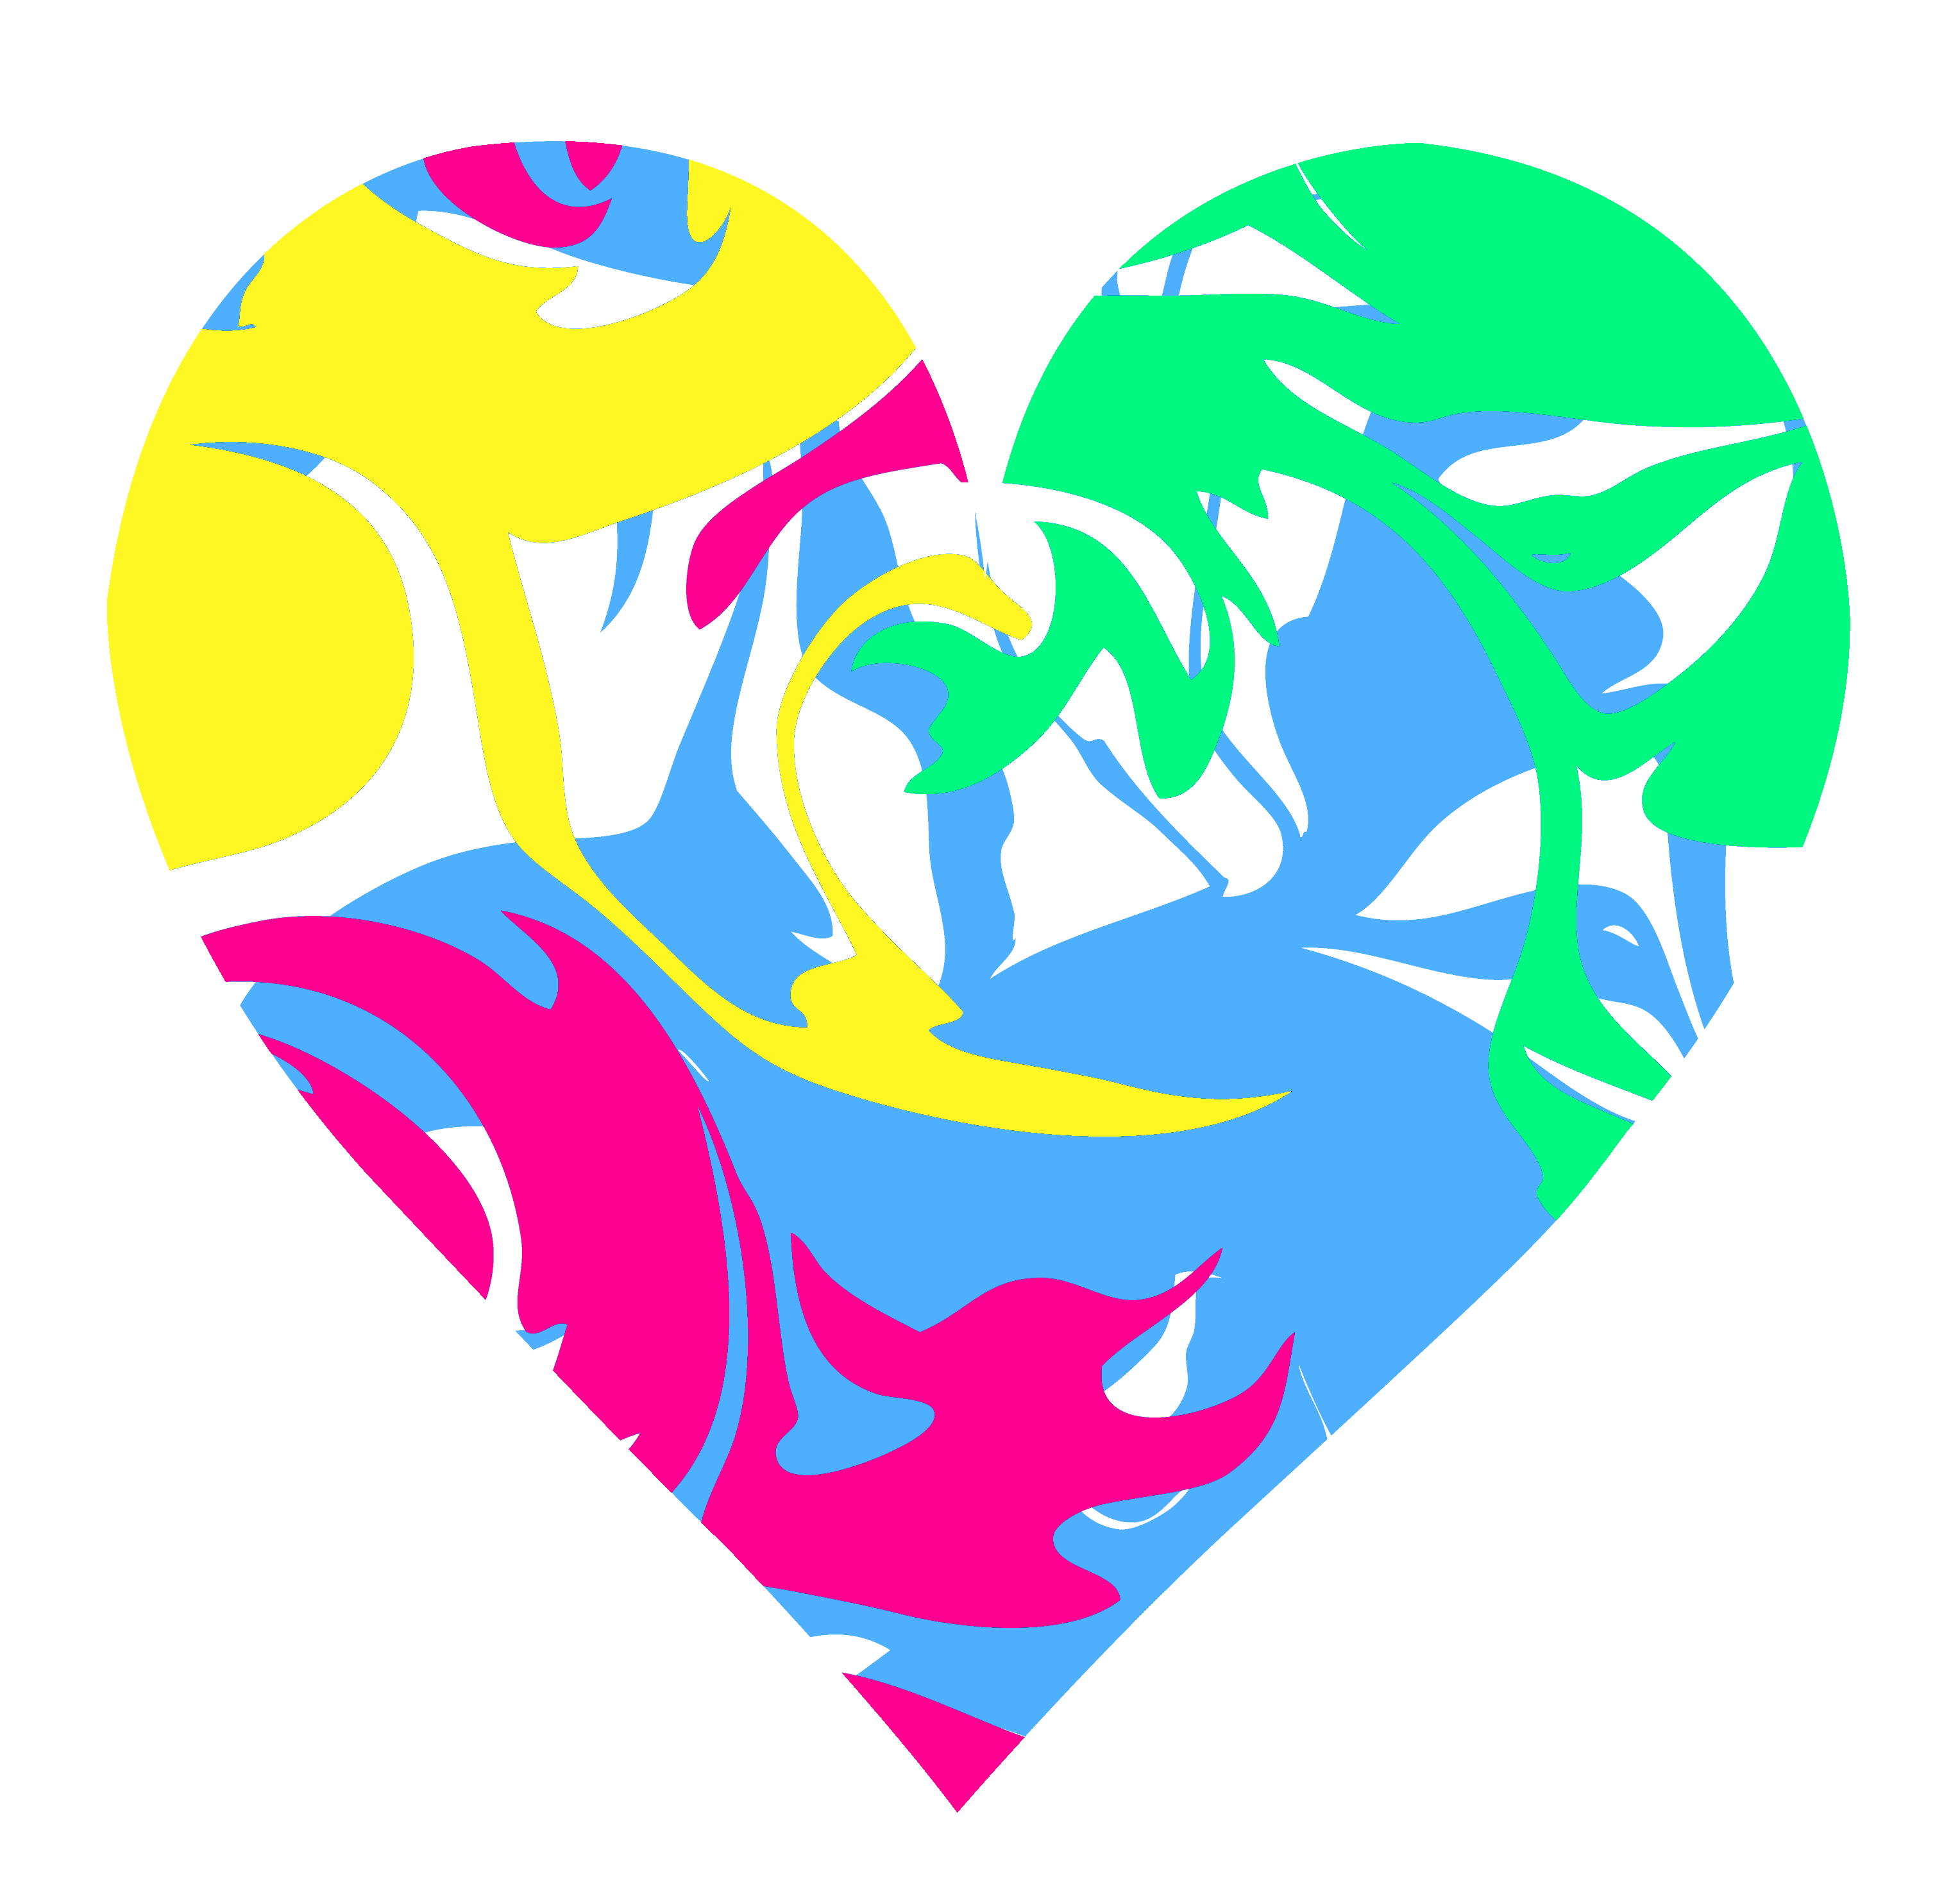 Colorful Swirly Heart - Free Clip Art